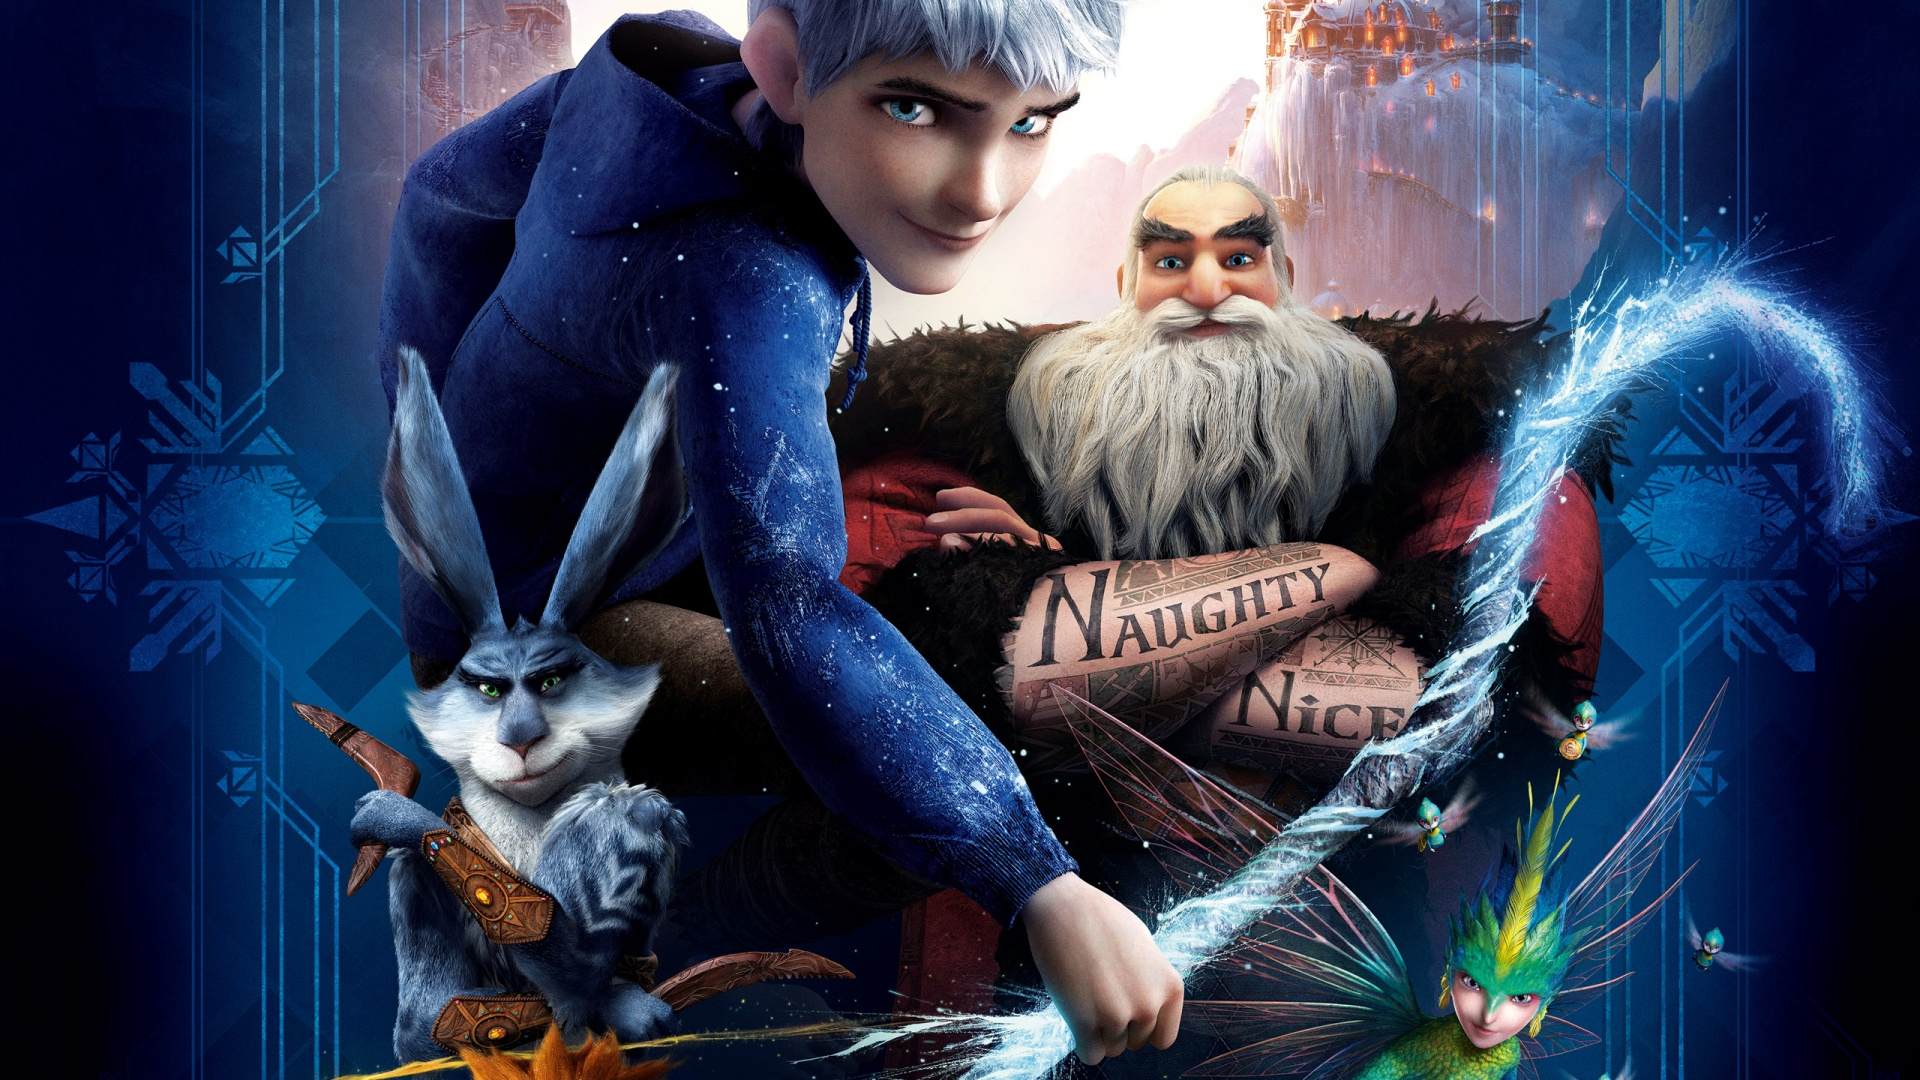 1920x1080 - Rise Of The Guardians Wallpapers 3